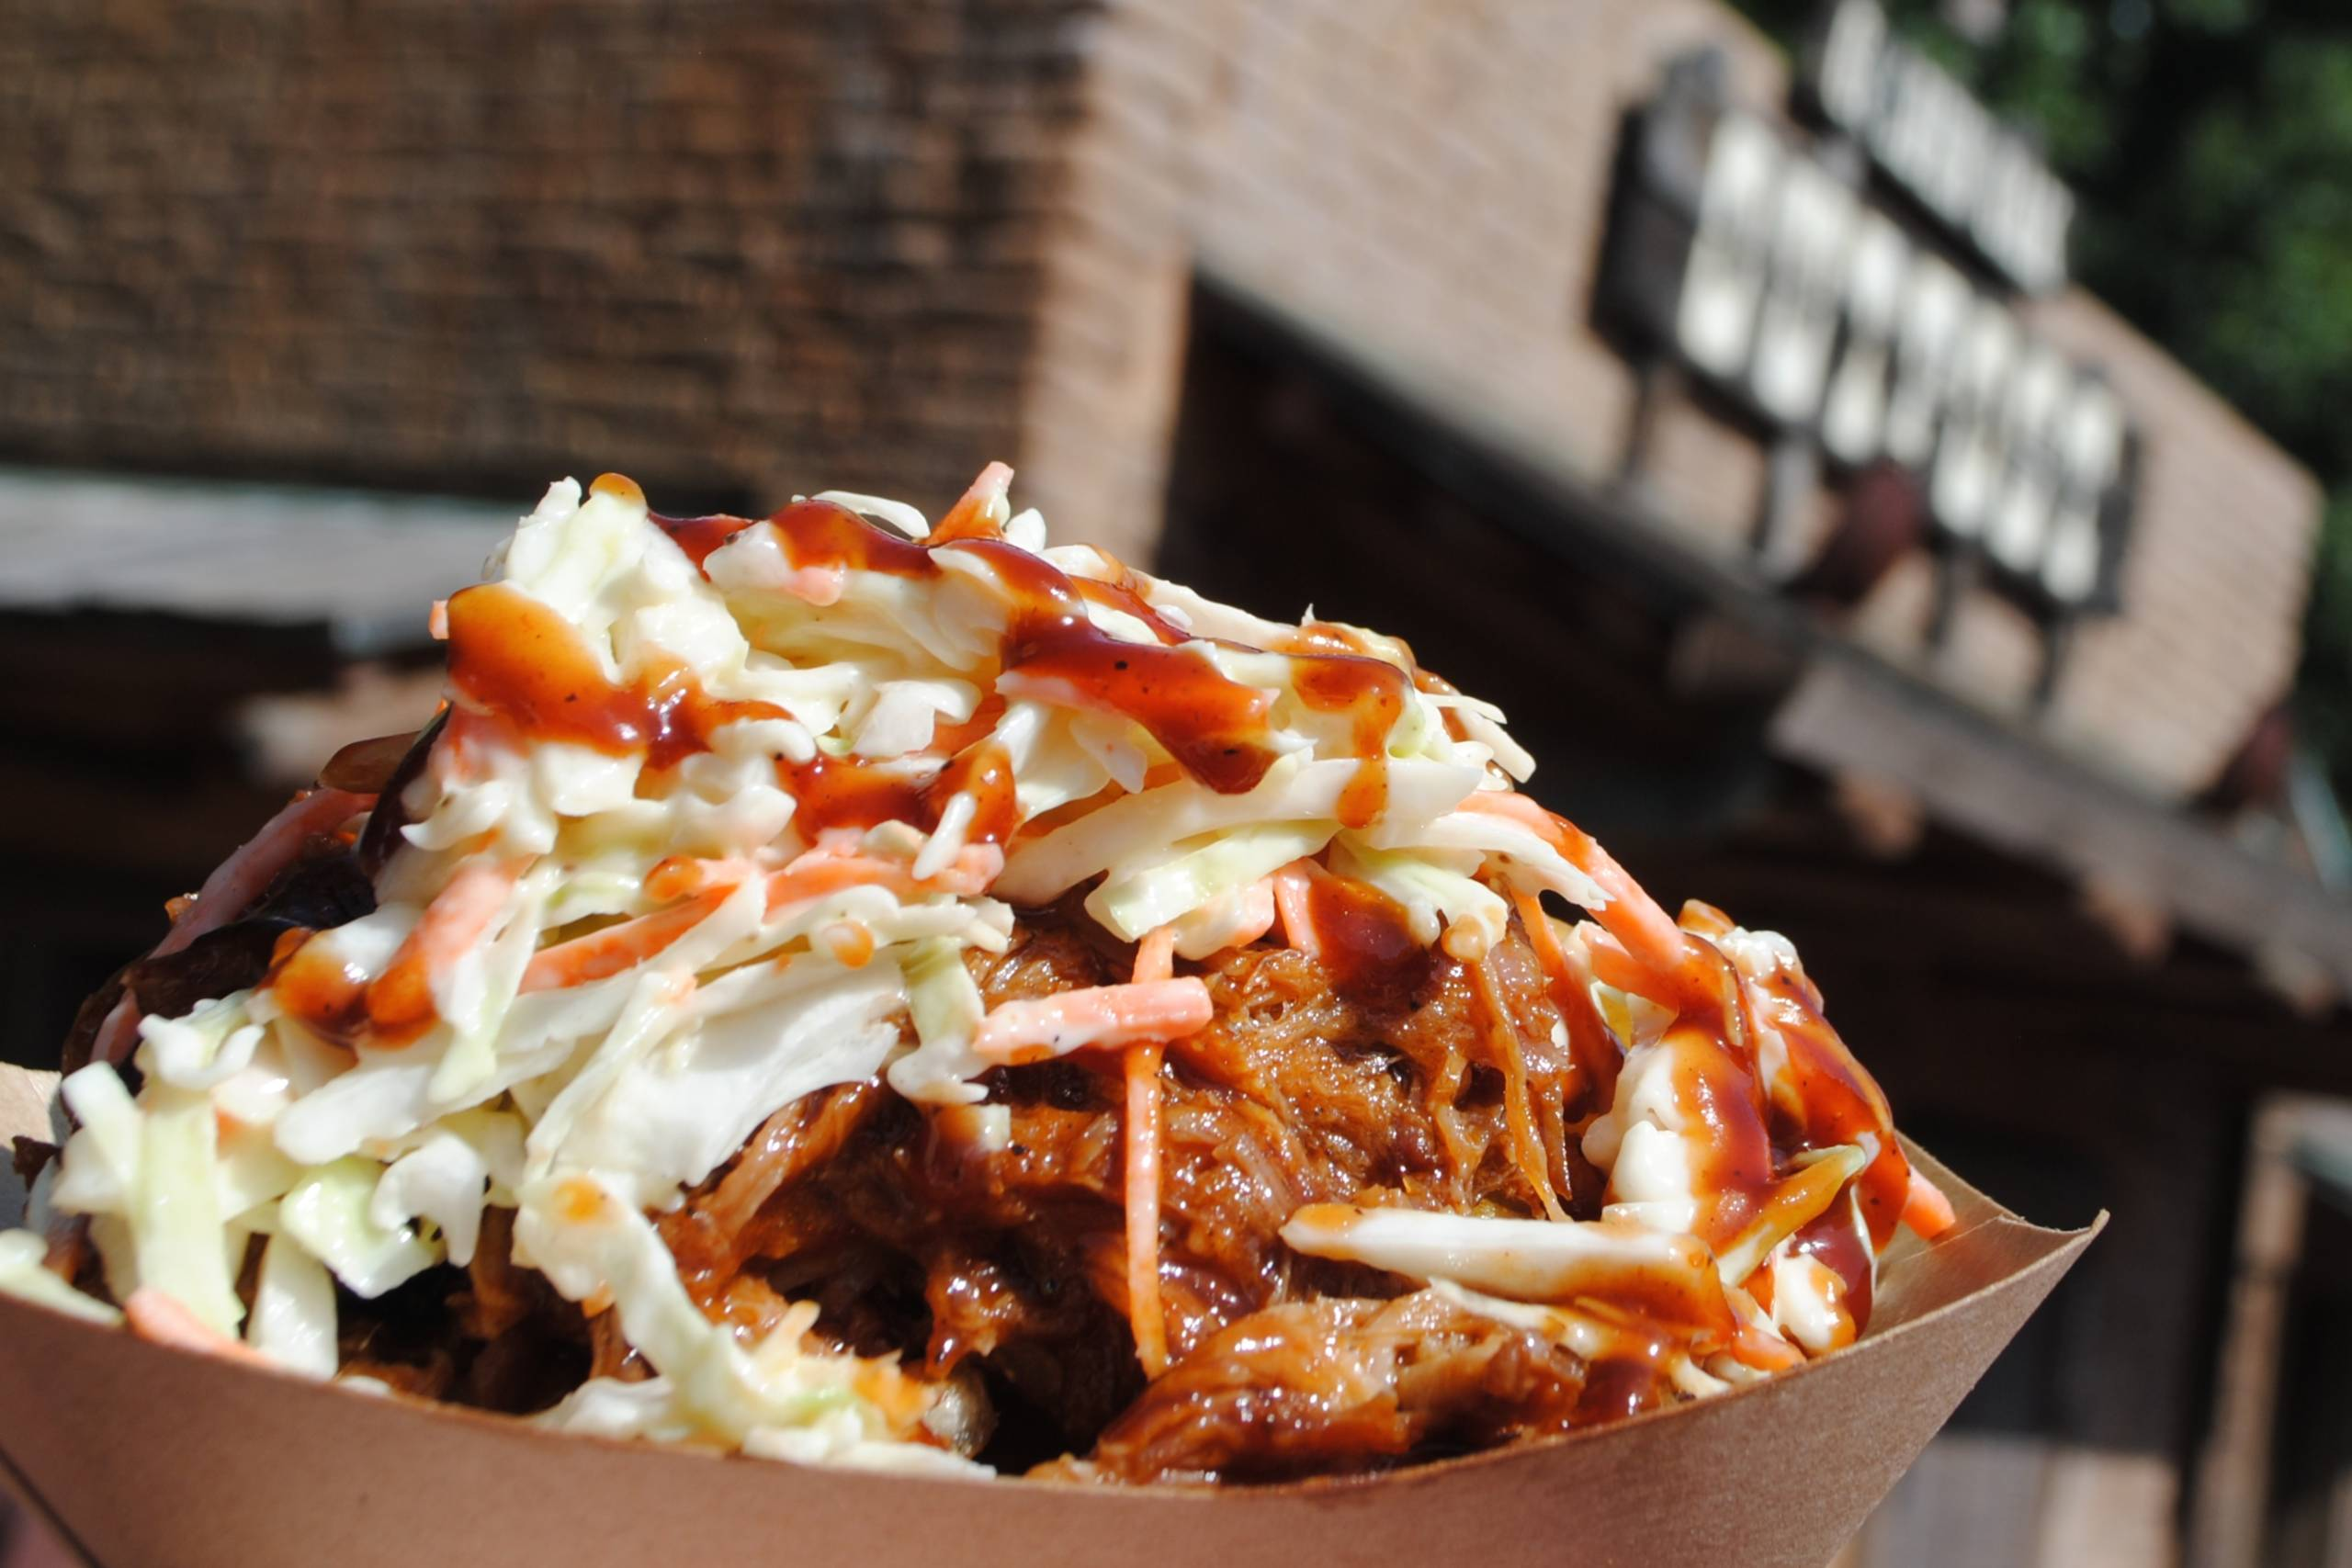 Barbecue Pork Waffle Fries topped with Barbecue Pork and Coleslaw